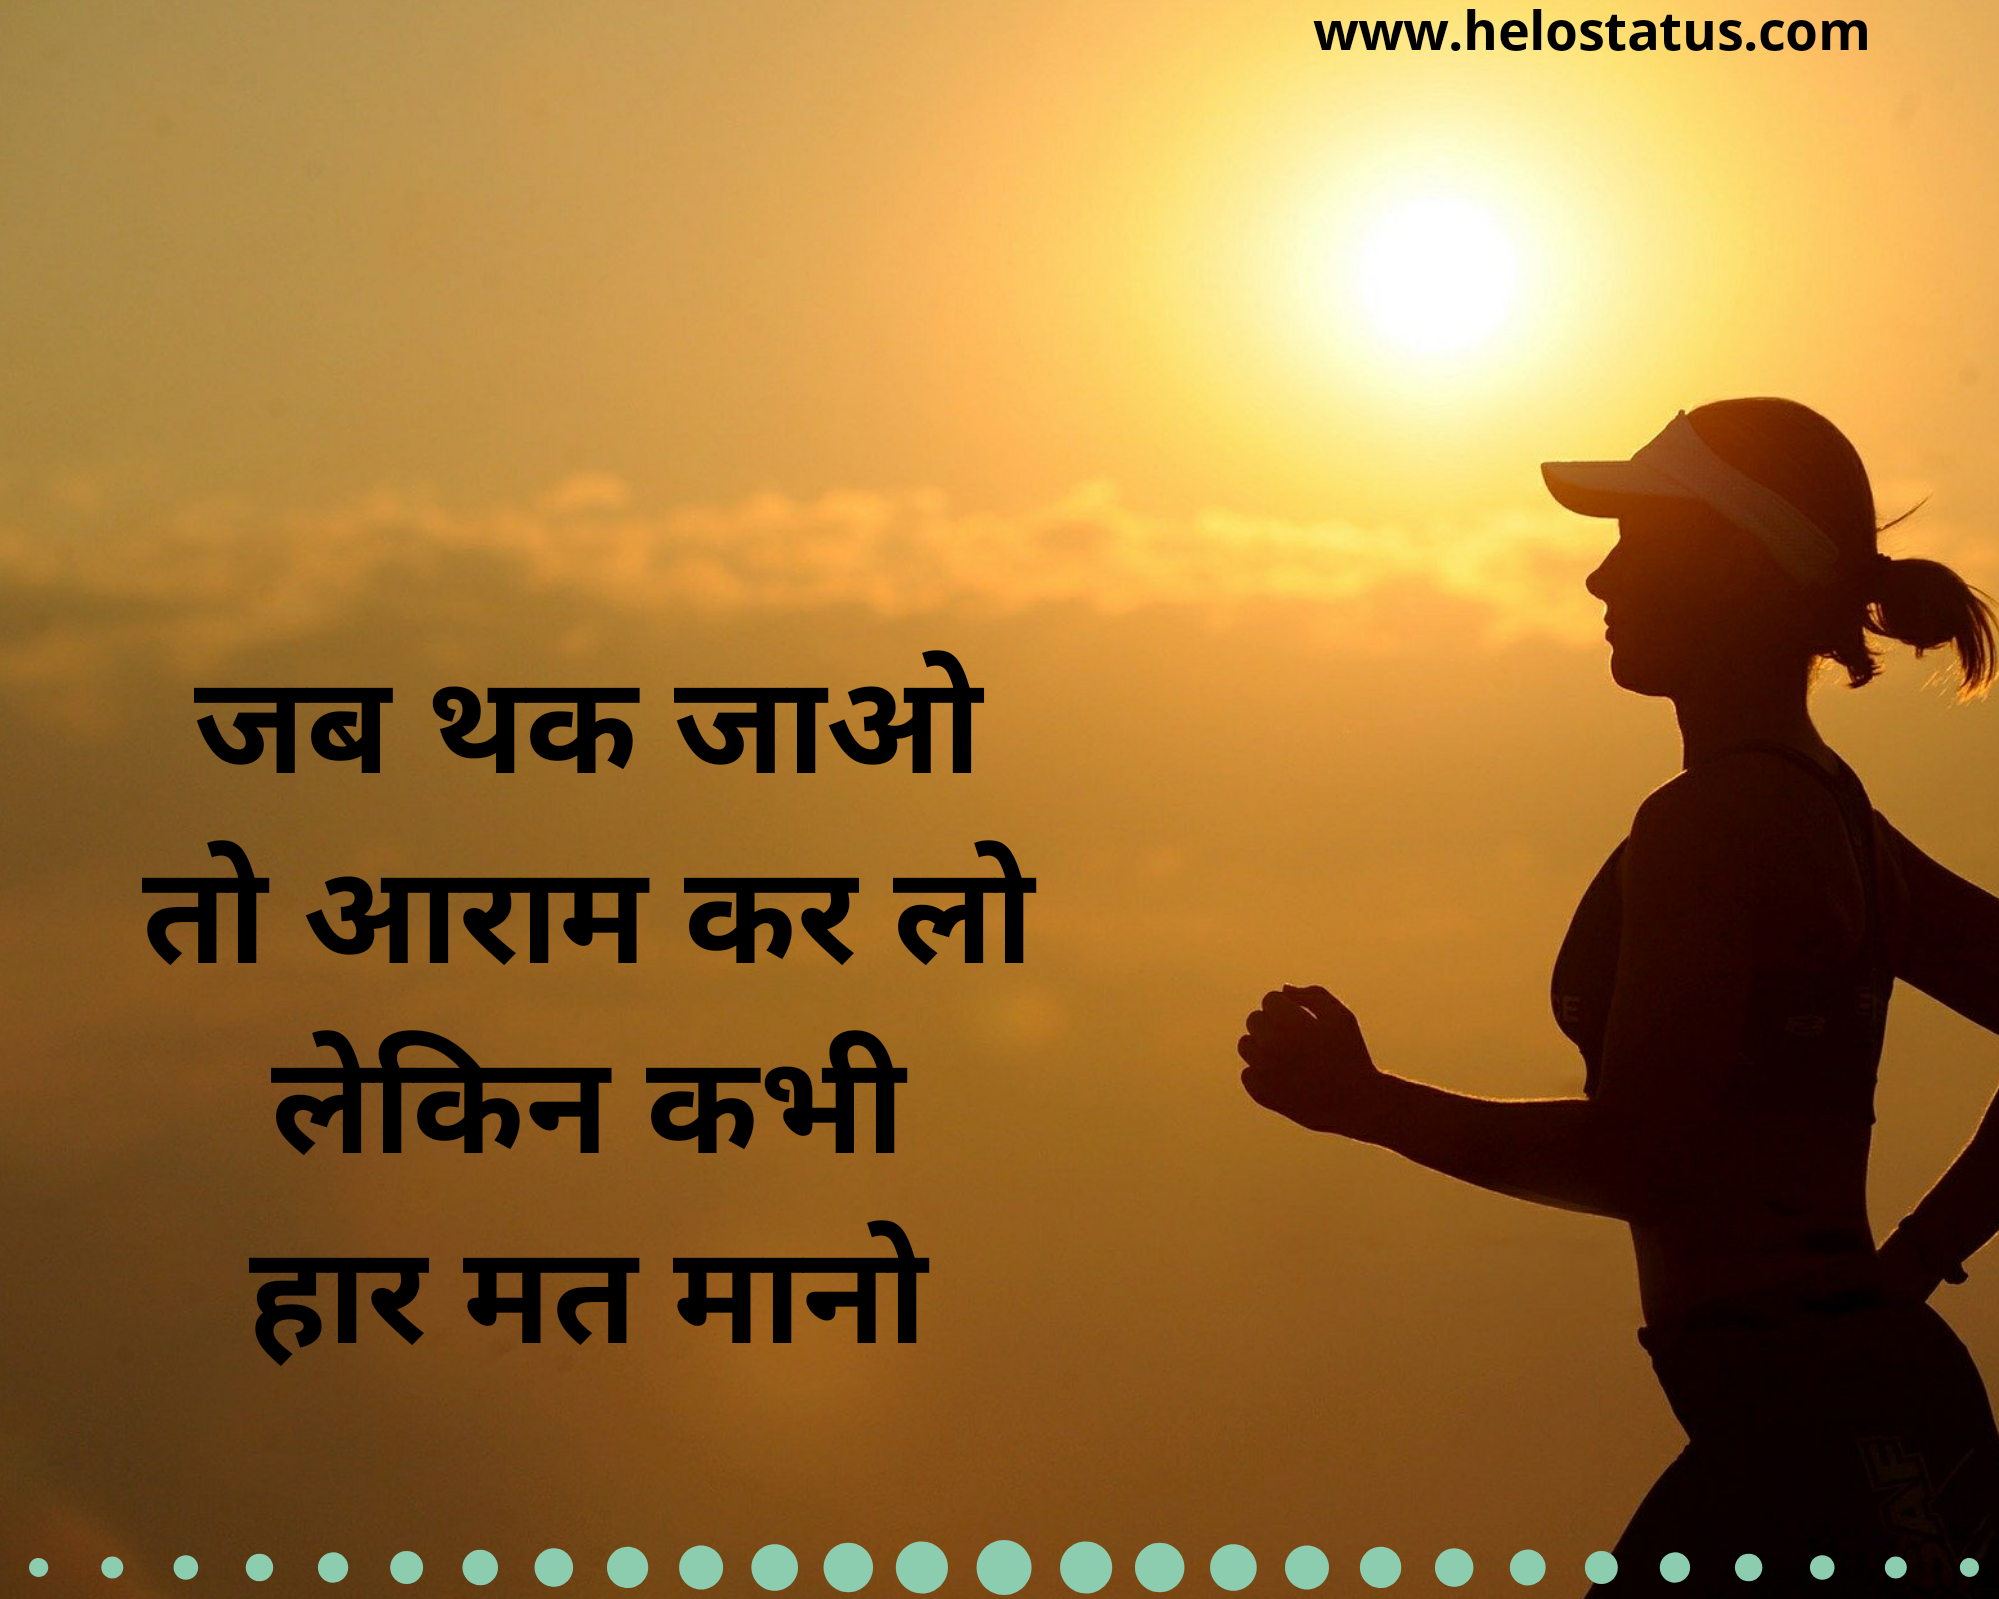 Motivational Quotes In Hindi Image Photo Wallpaper Hd Free Download